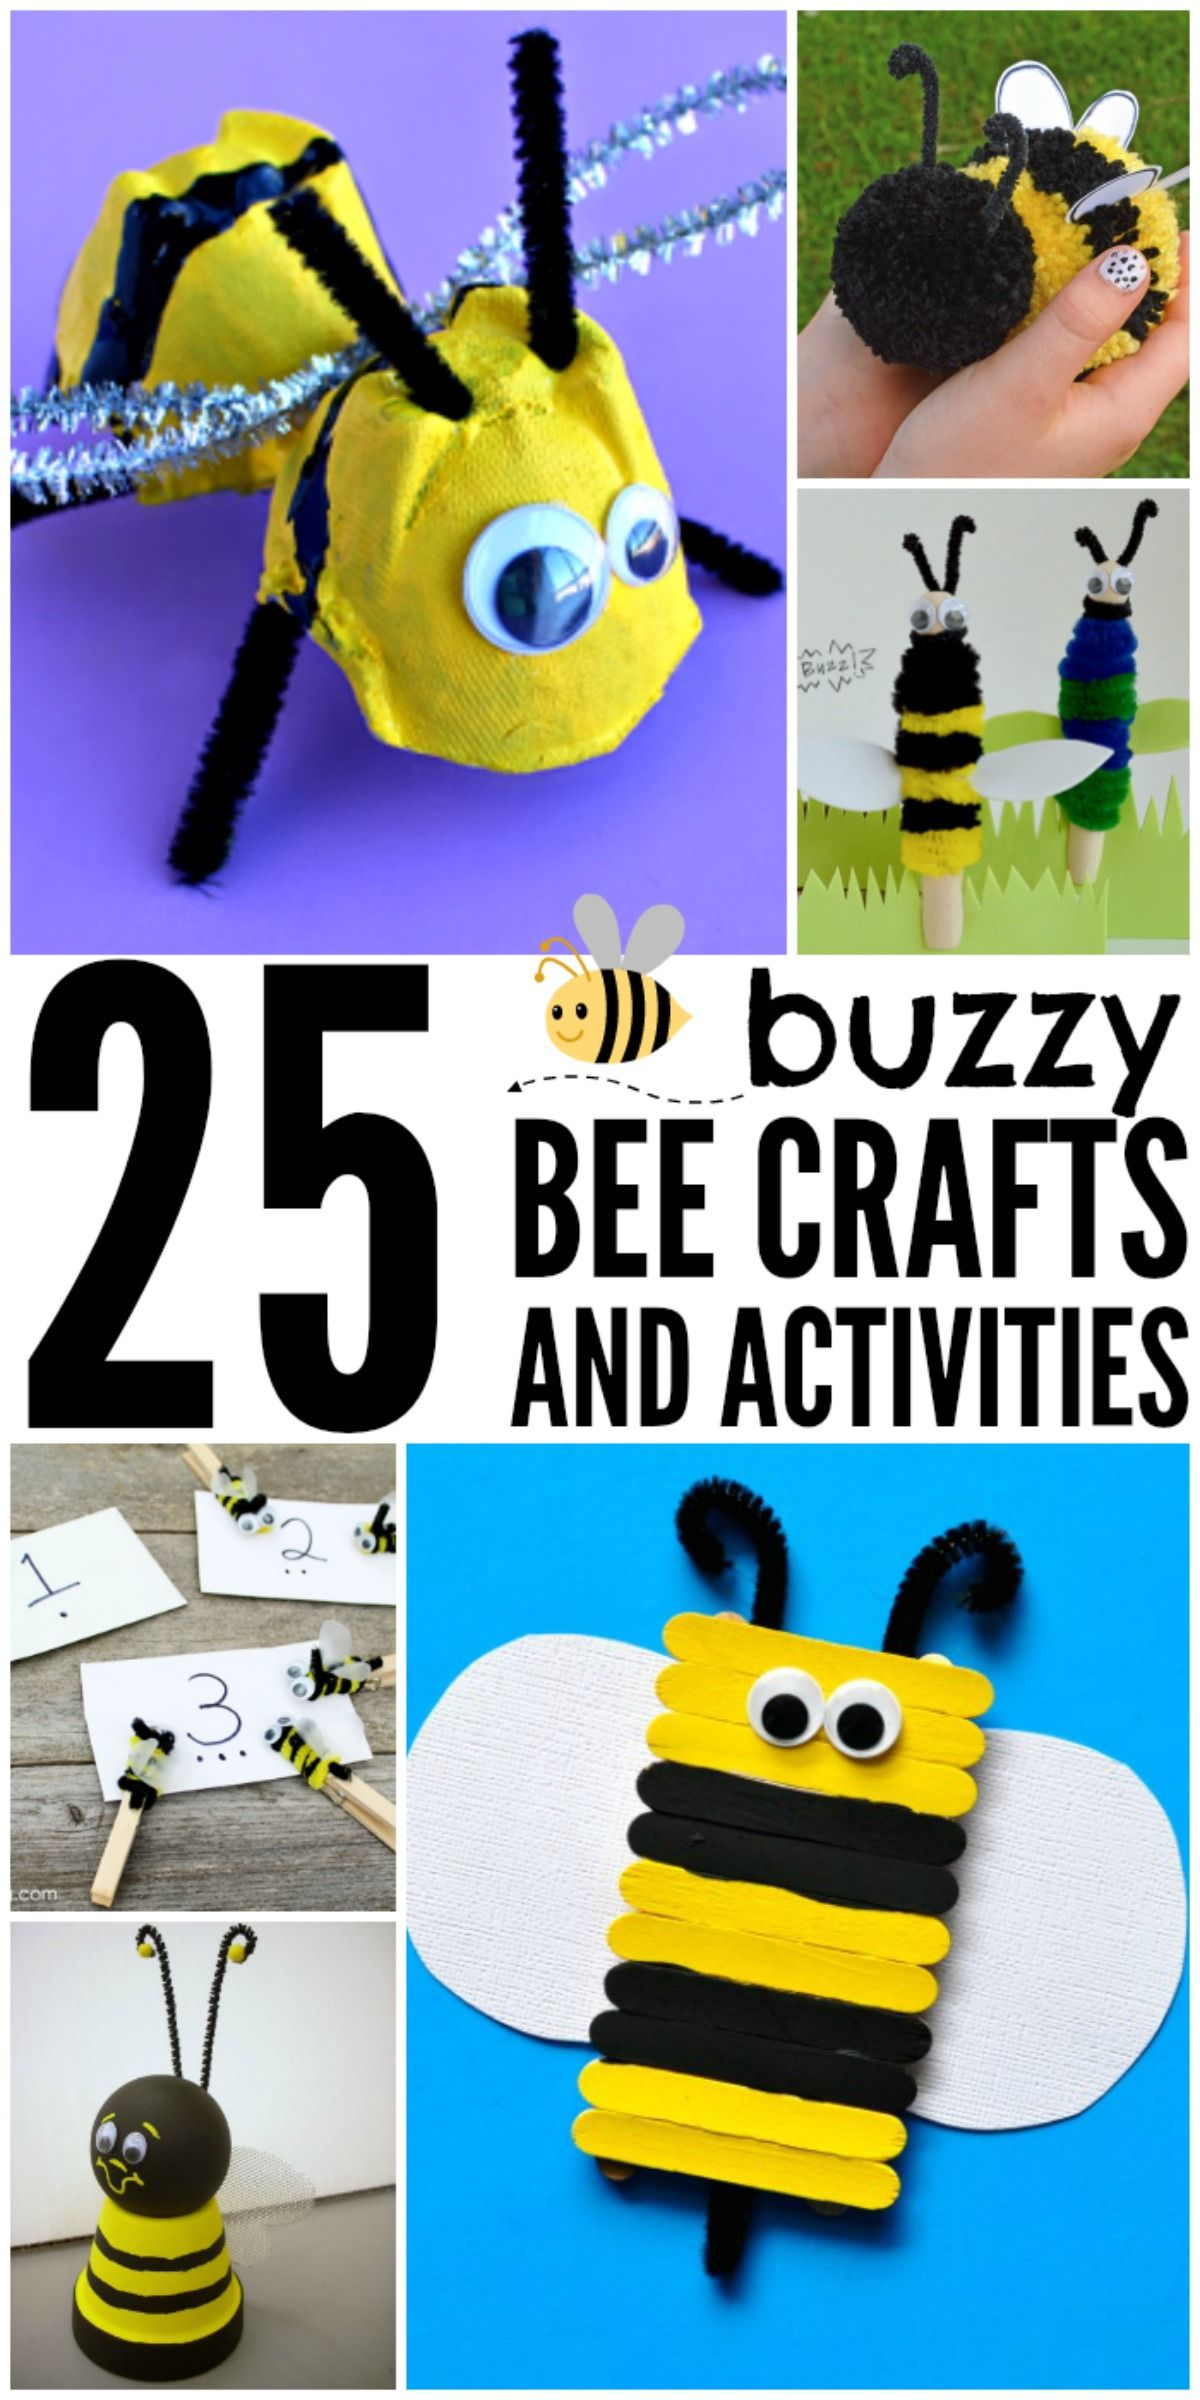 25 Buzzy Bee Crafts Amp Activities